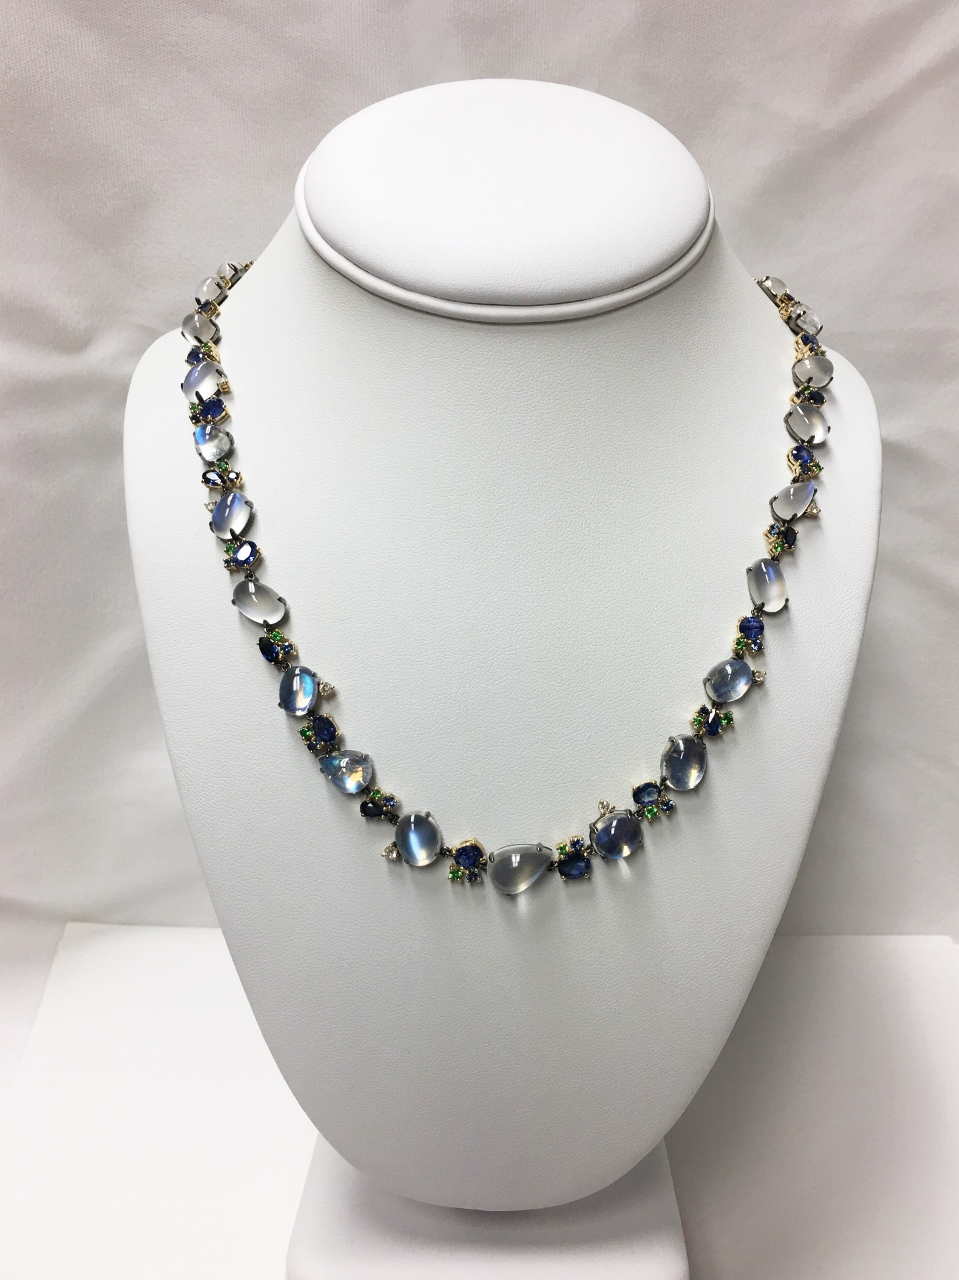 50 Carats Total Weight Moonstones Necklace